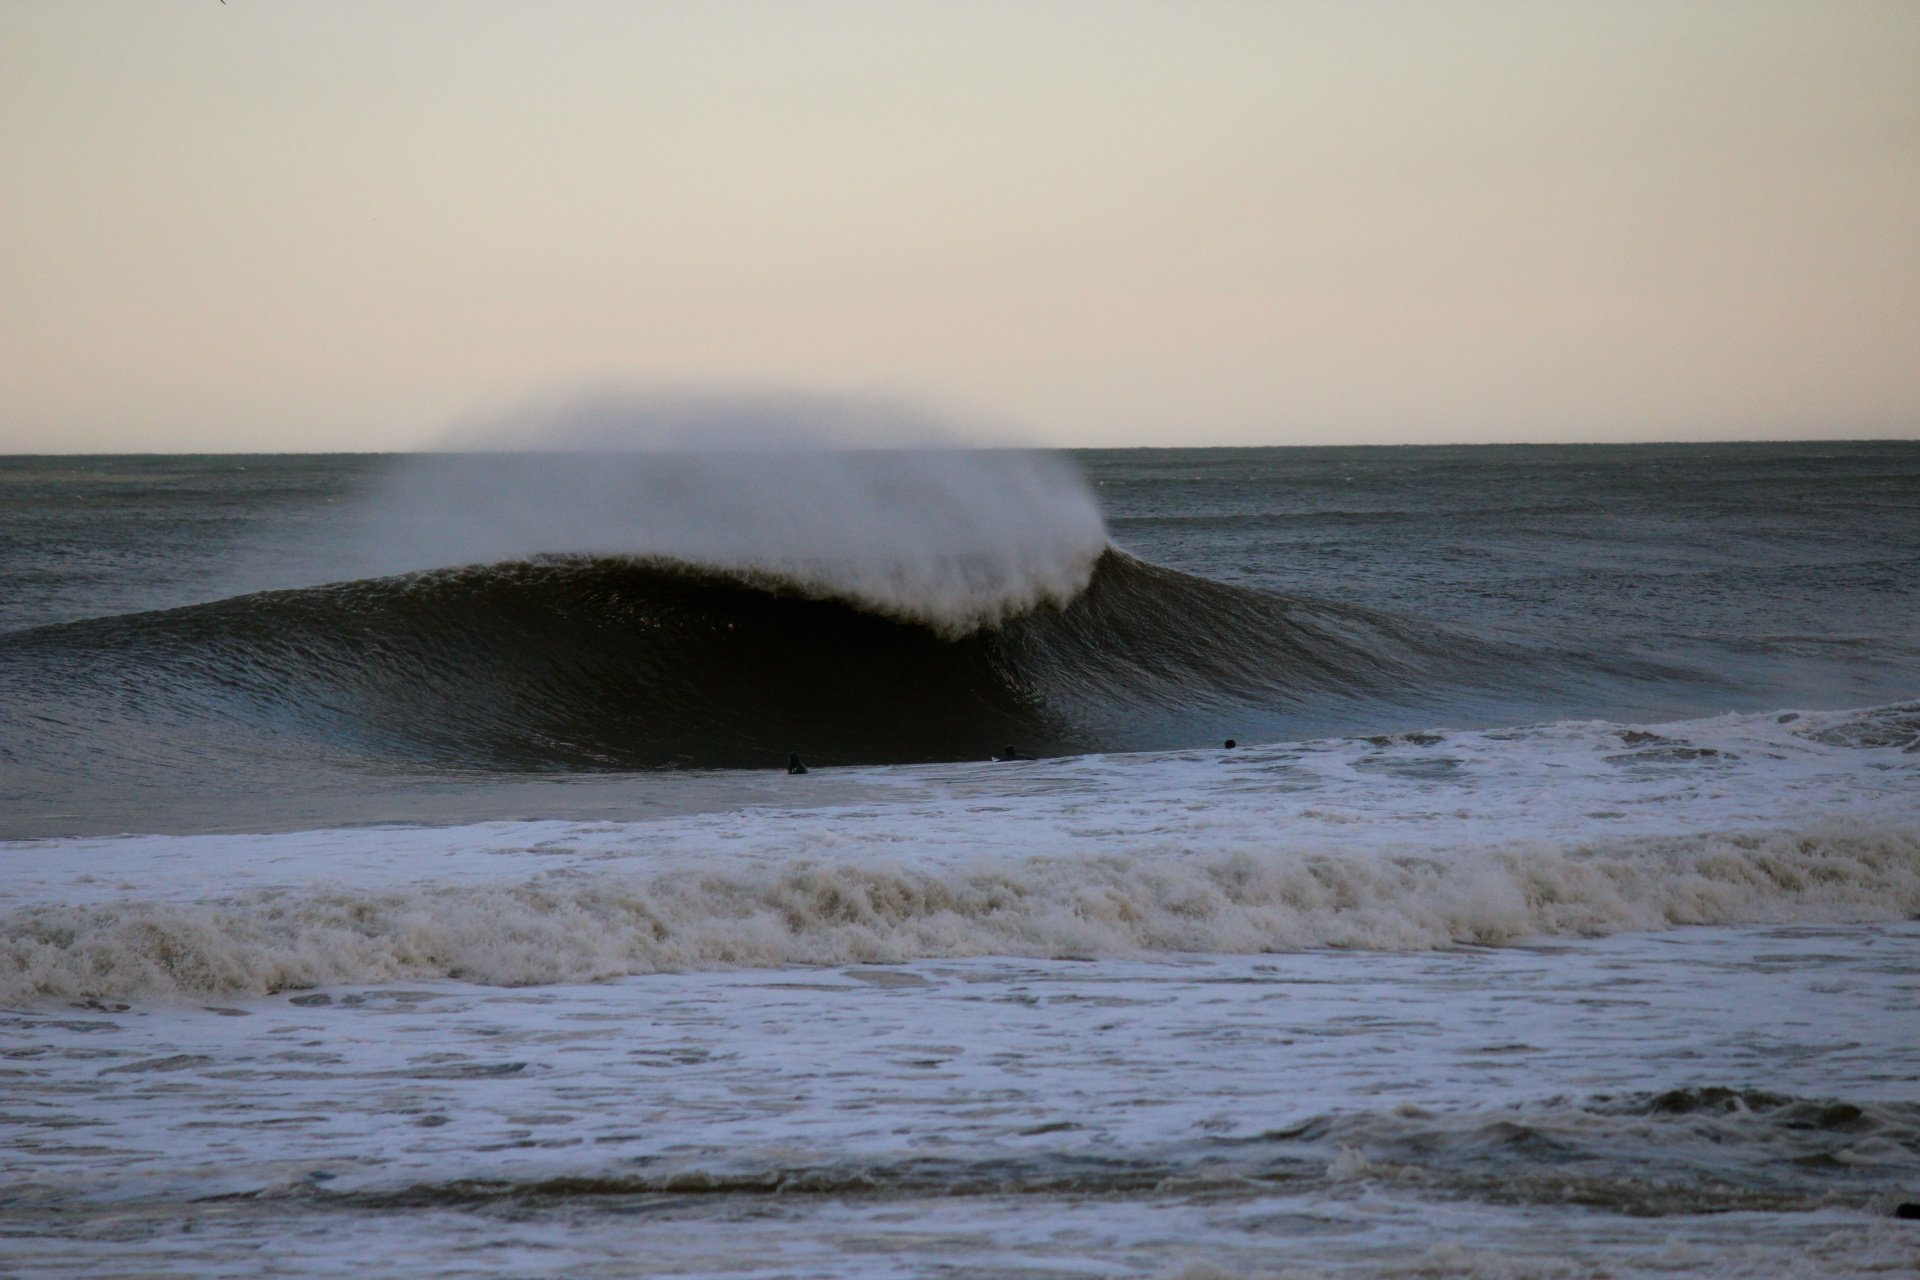 Richard Harold Photo's photo of Manasquan